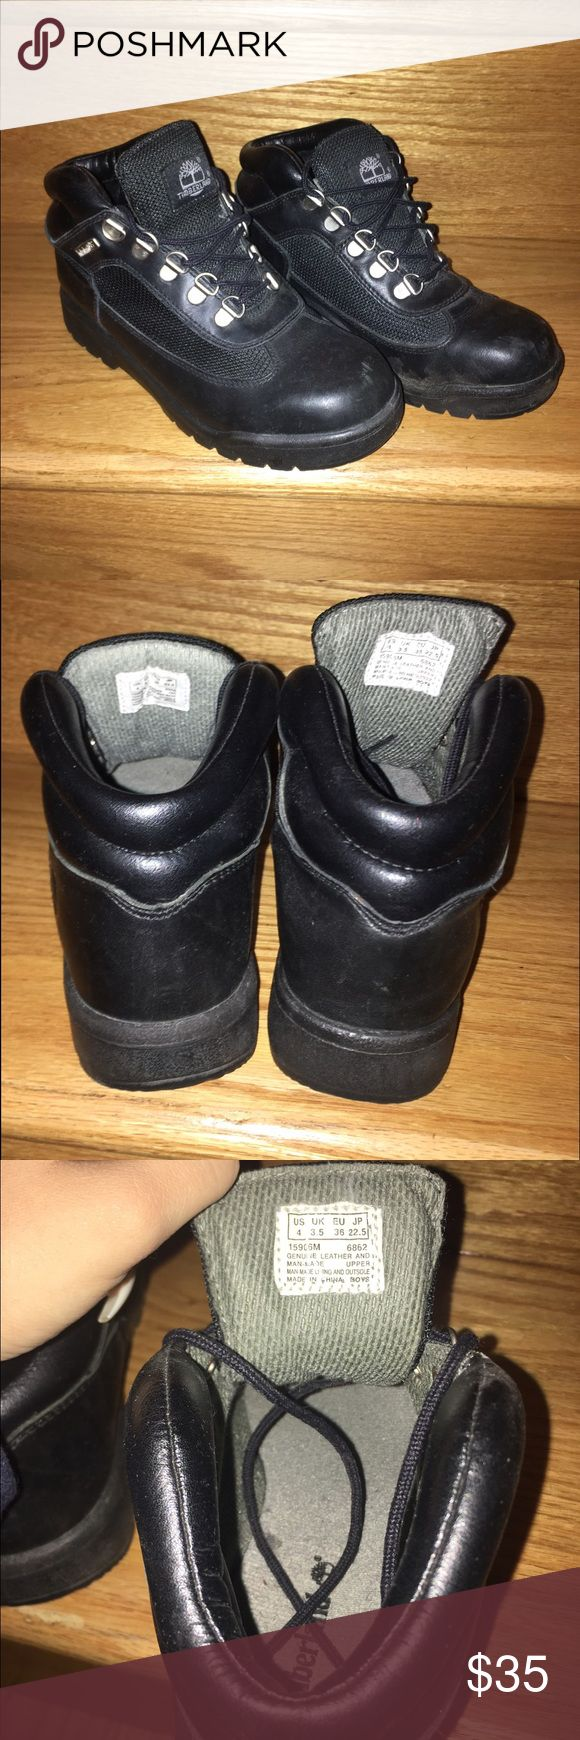 Black timberland boots Black Timberland Boots Size 4 Gently Used message me with any questions timberland  Shoes Ankle Boots & Booties